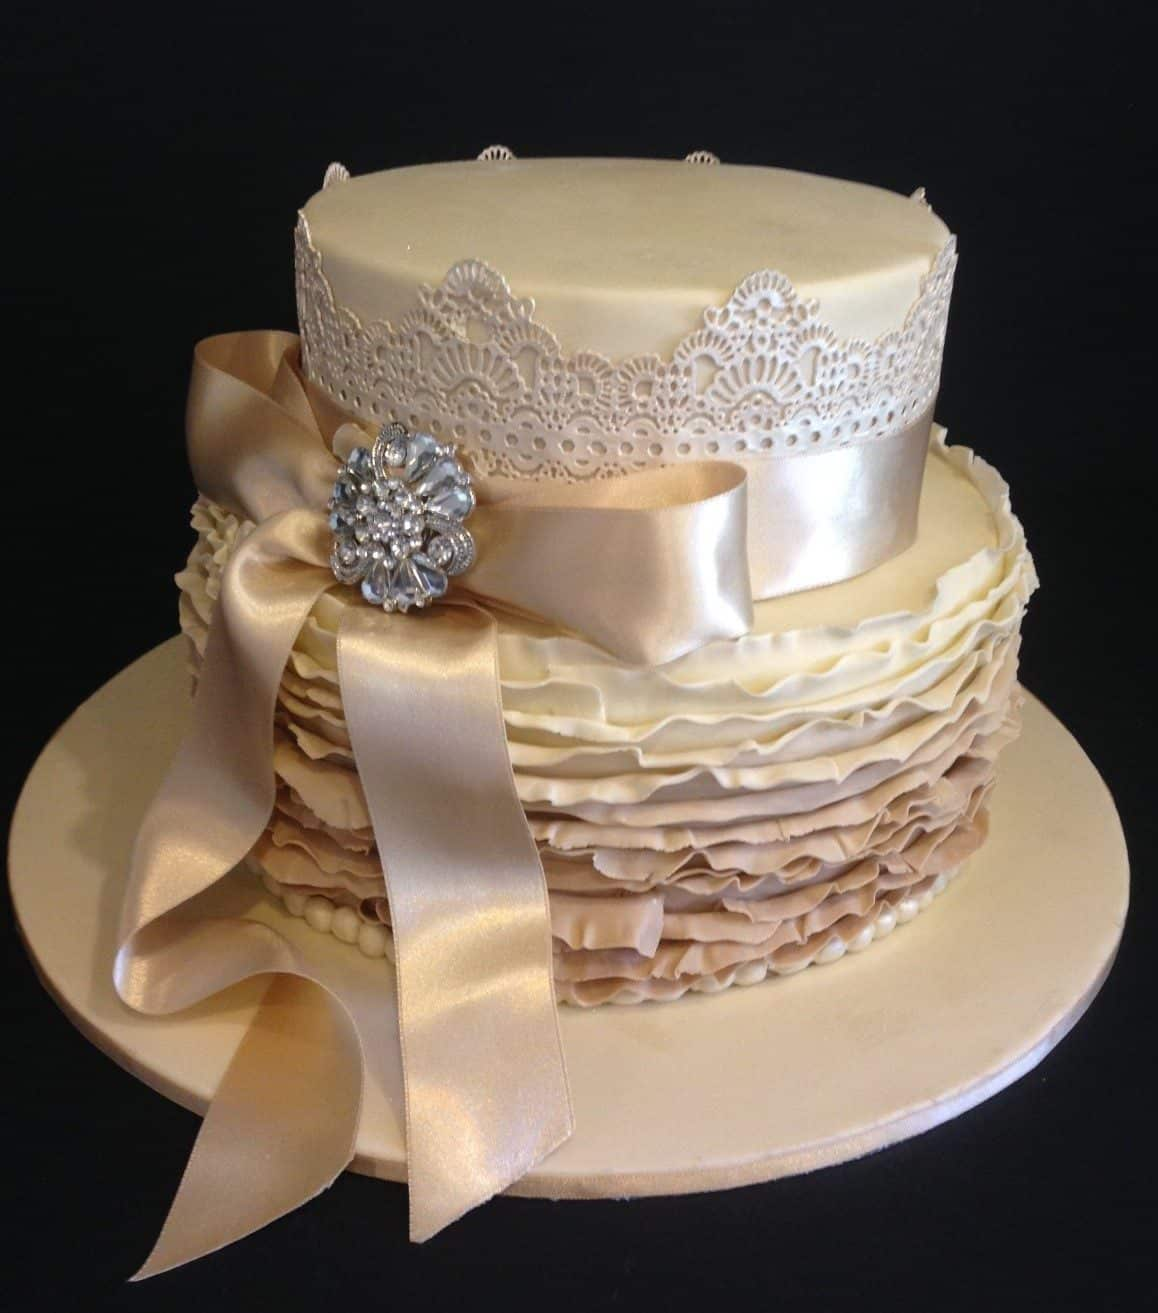 ombre ruffles satin diamante wedding cakes party food melbourne image